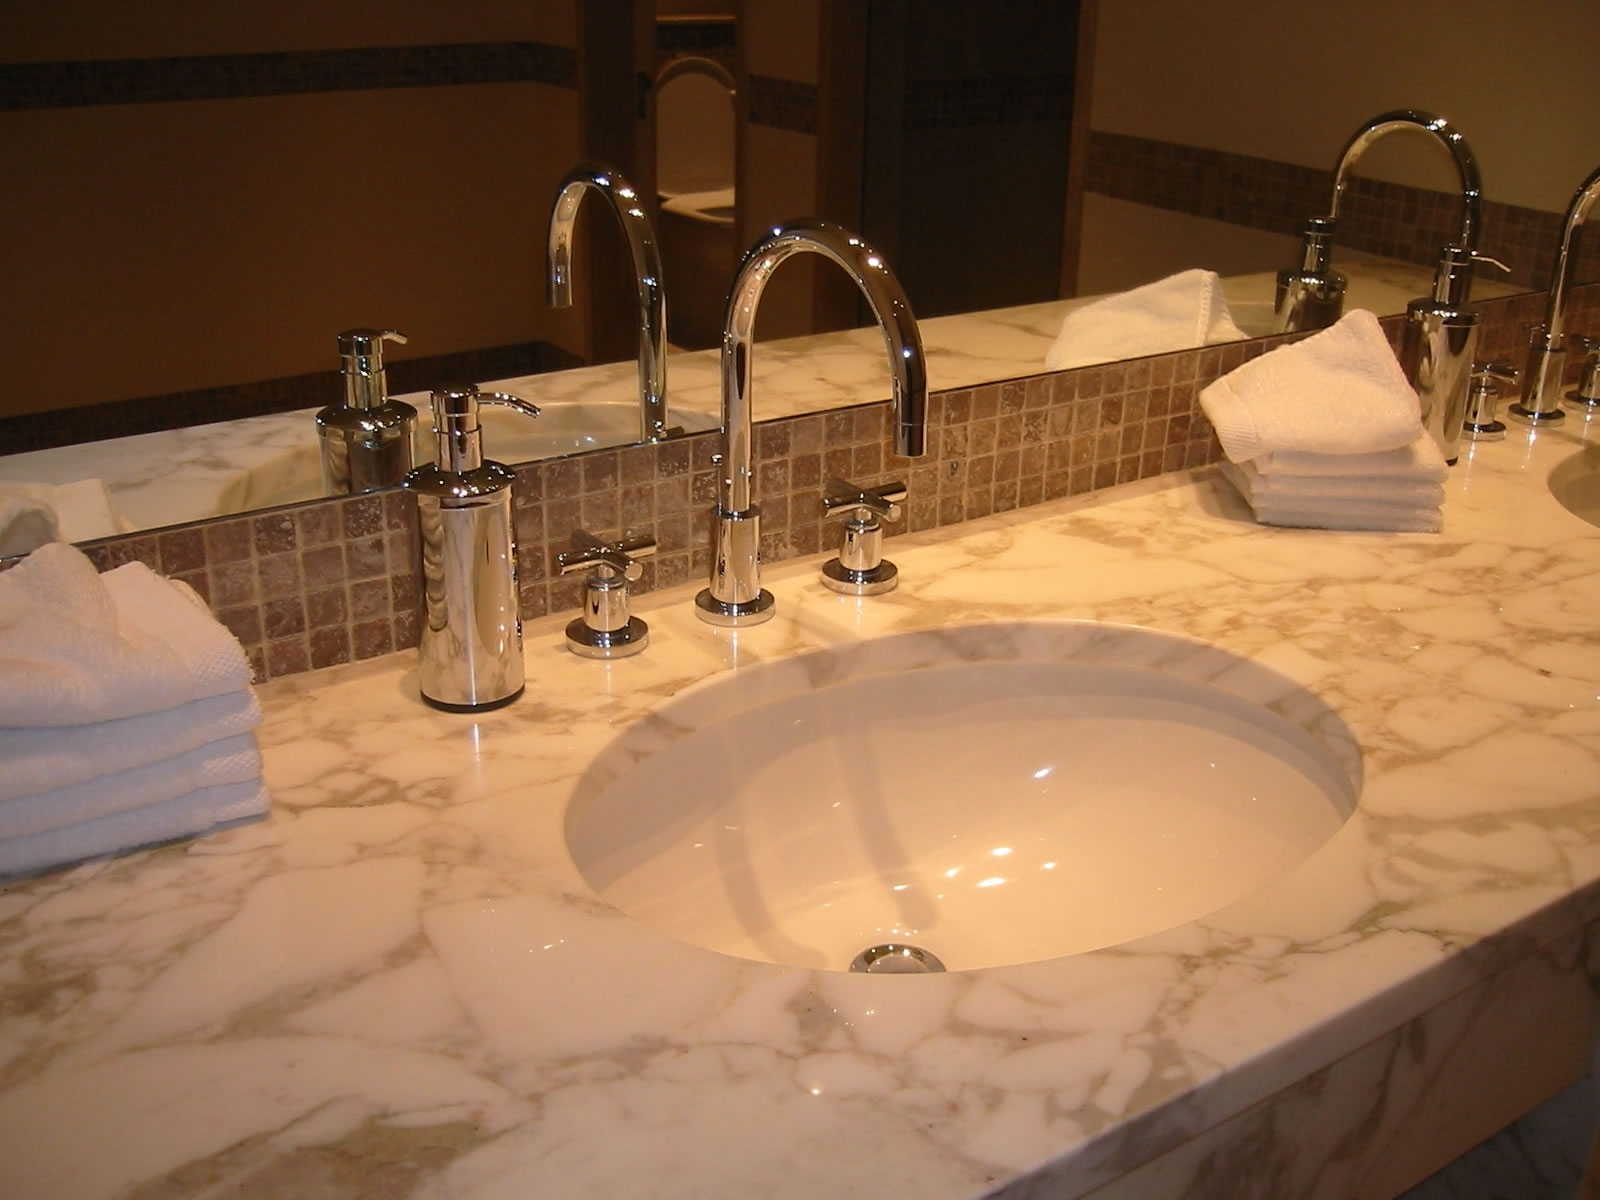 Bathroom Sinks – Common Types And Uses Vanity Designs For Bathrooms Pakistan